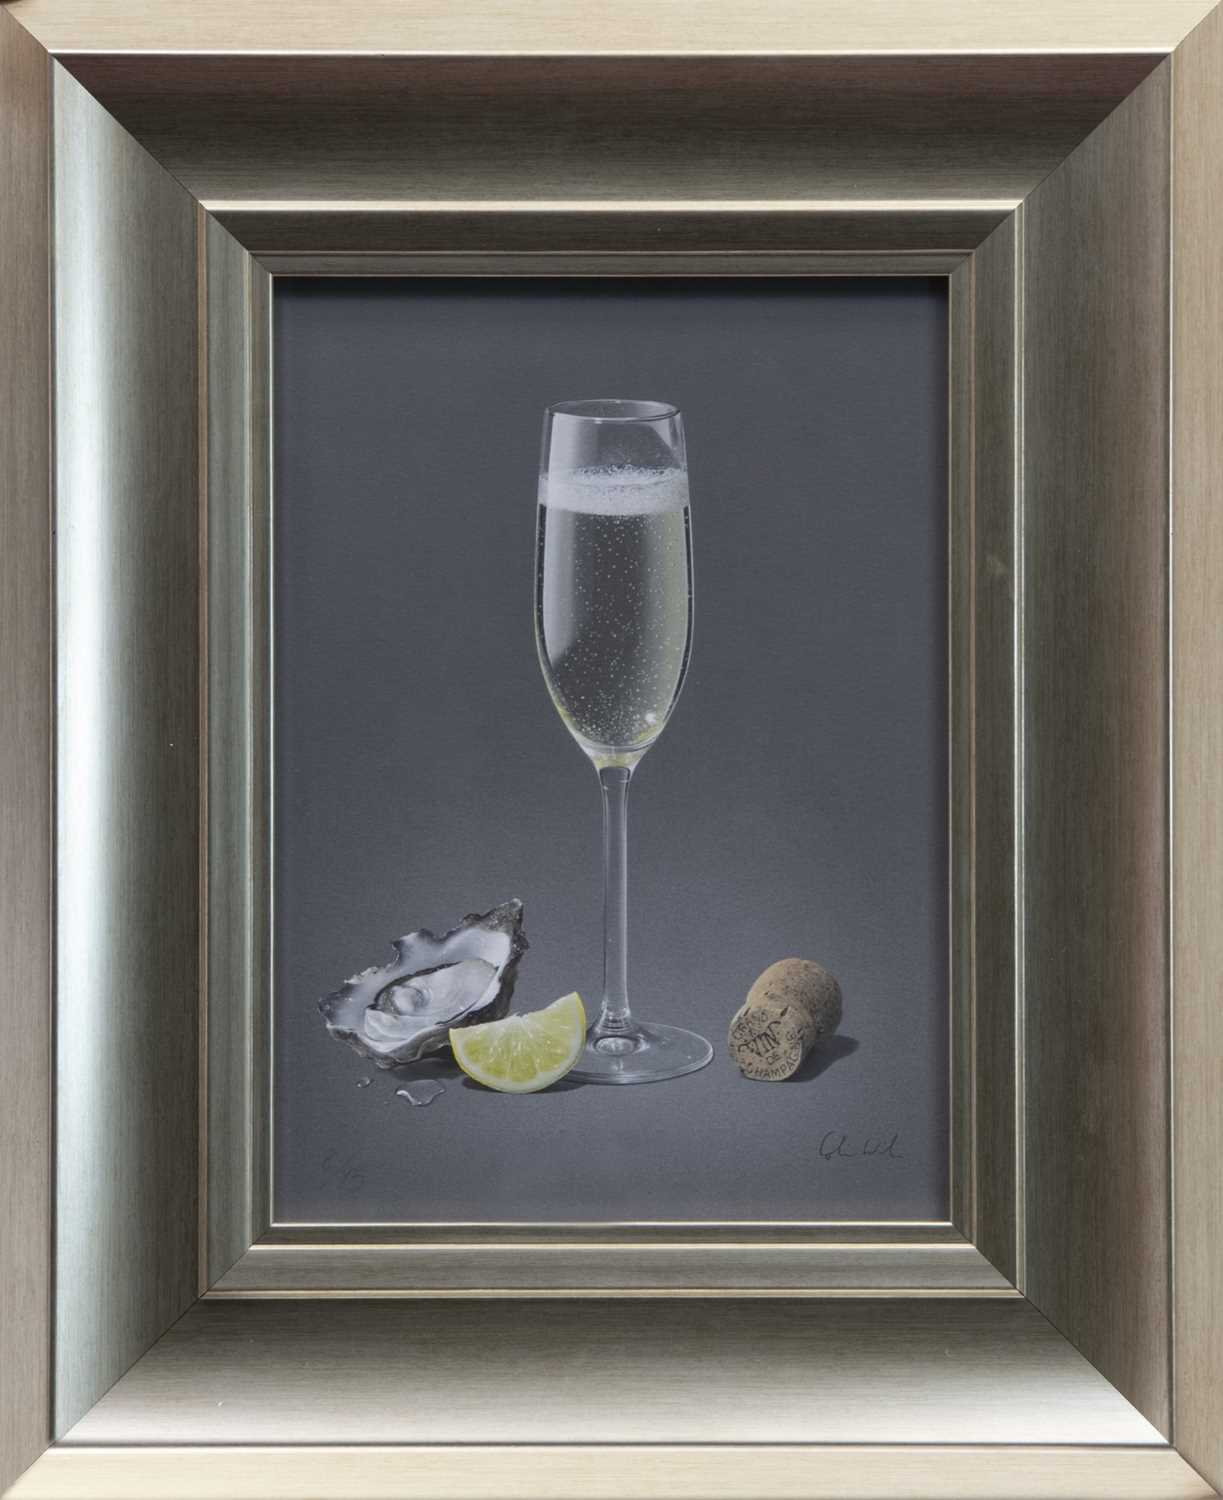 Lot 69 - CHAMPAGNE & OYSTER, A GICLEE PRINT BY COLIN WILSON